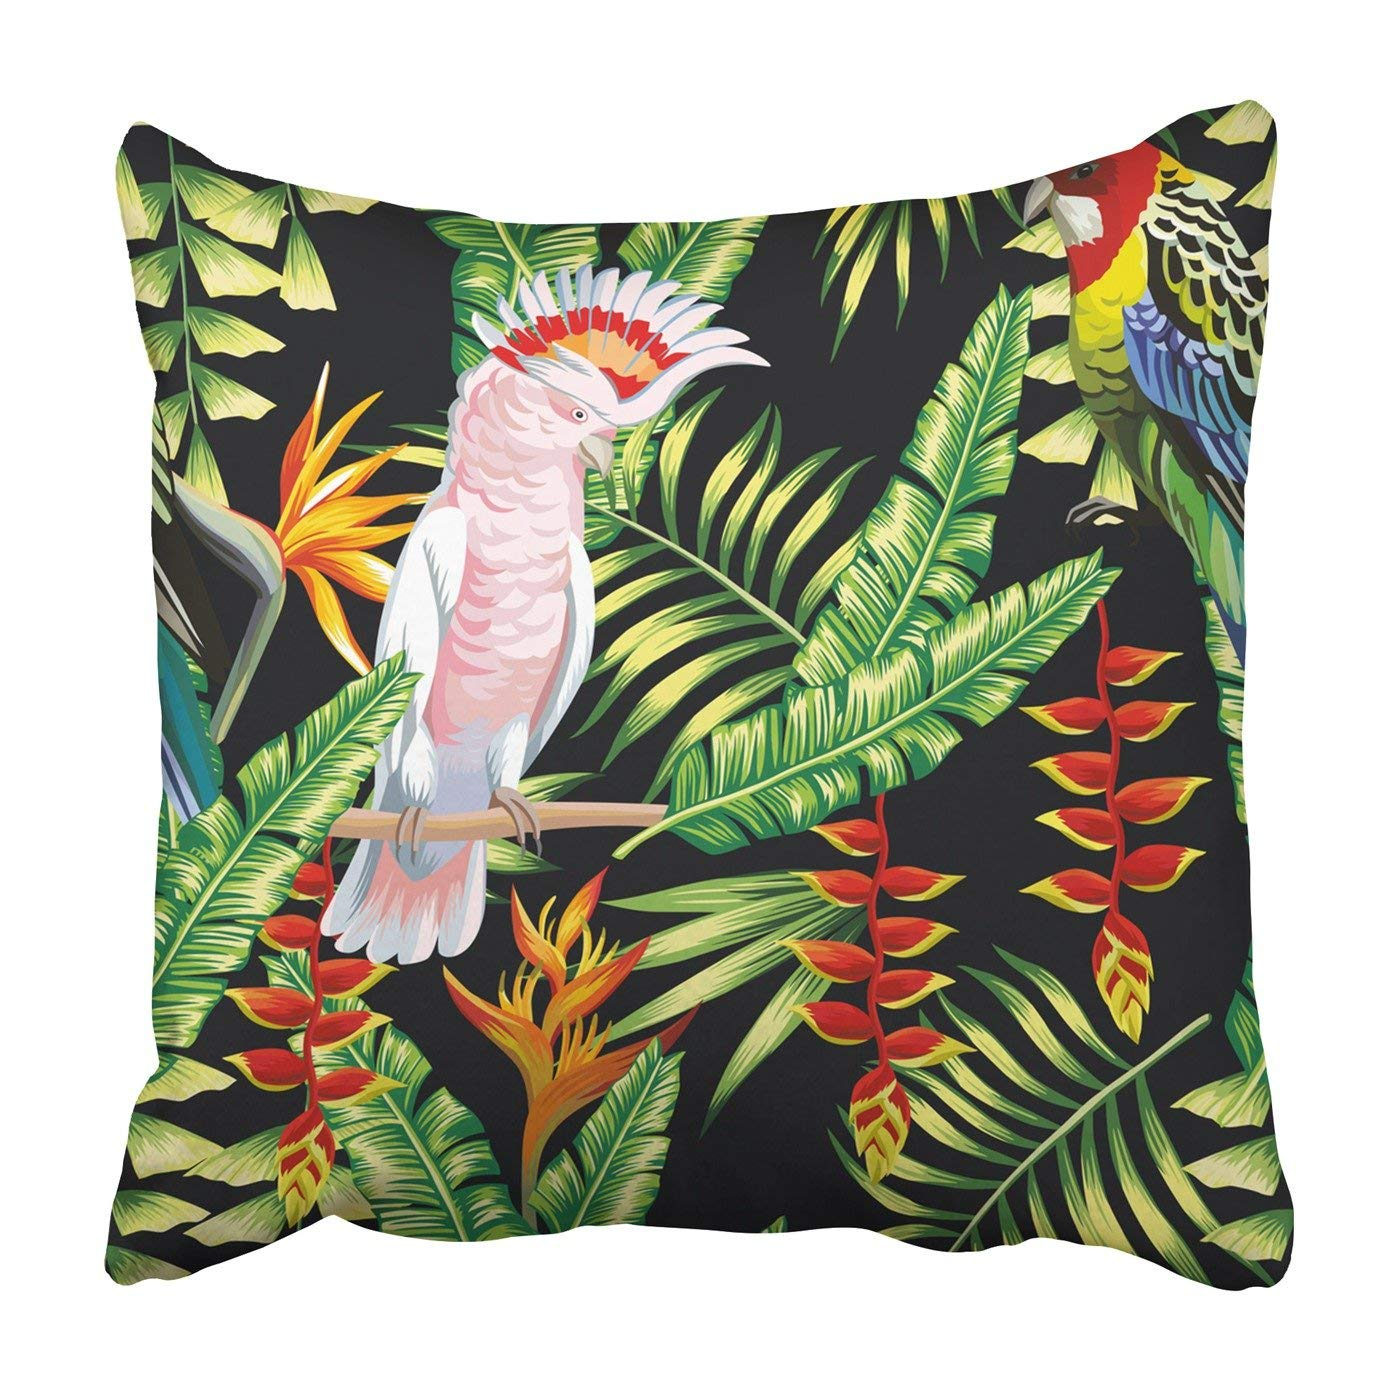 WOPOP Tropic bird macaw and multicolor parrot Pillowcase Throw Pillow Cover Case 20x20 inches